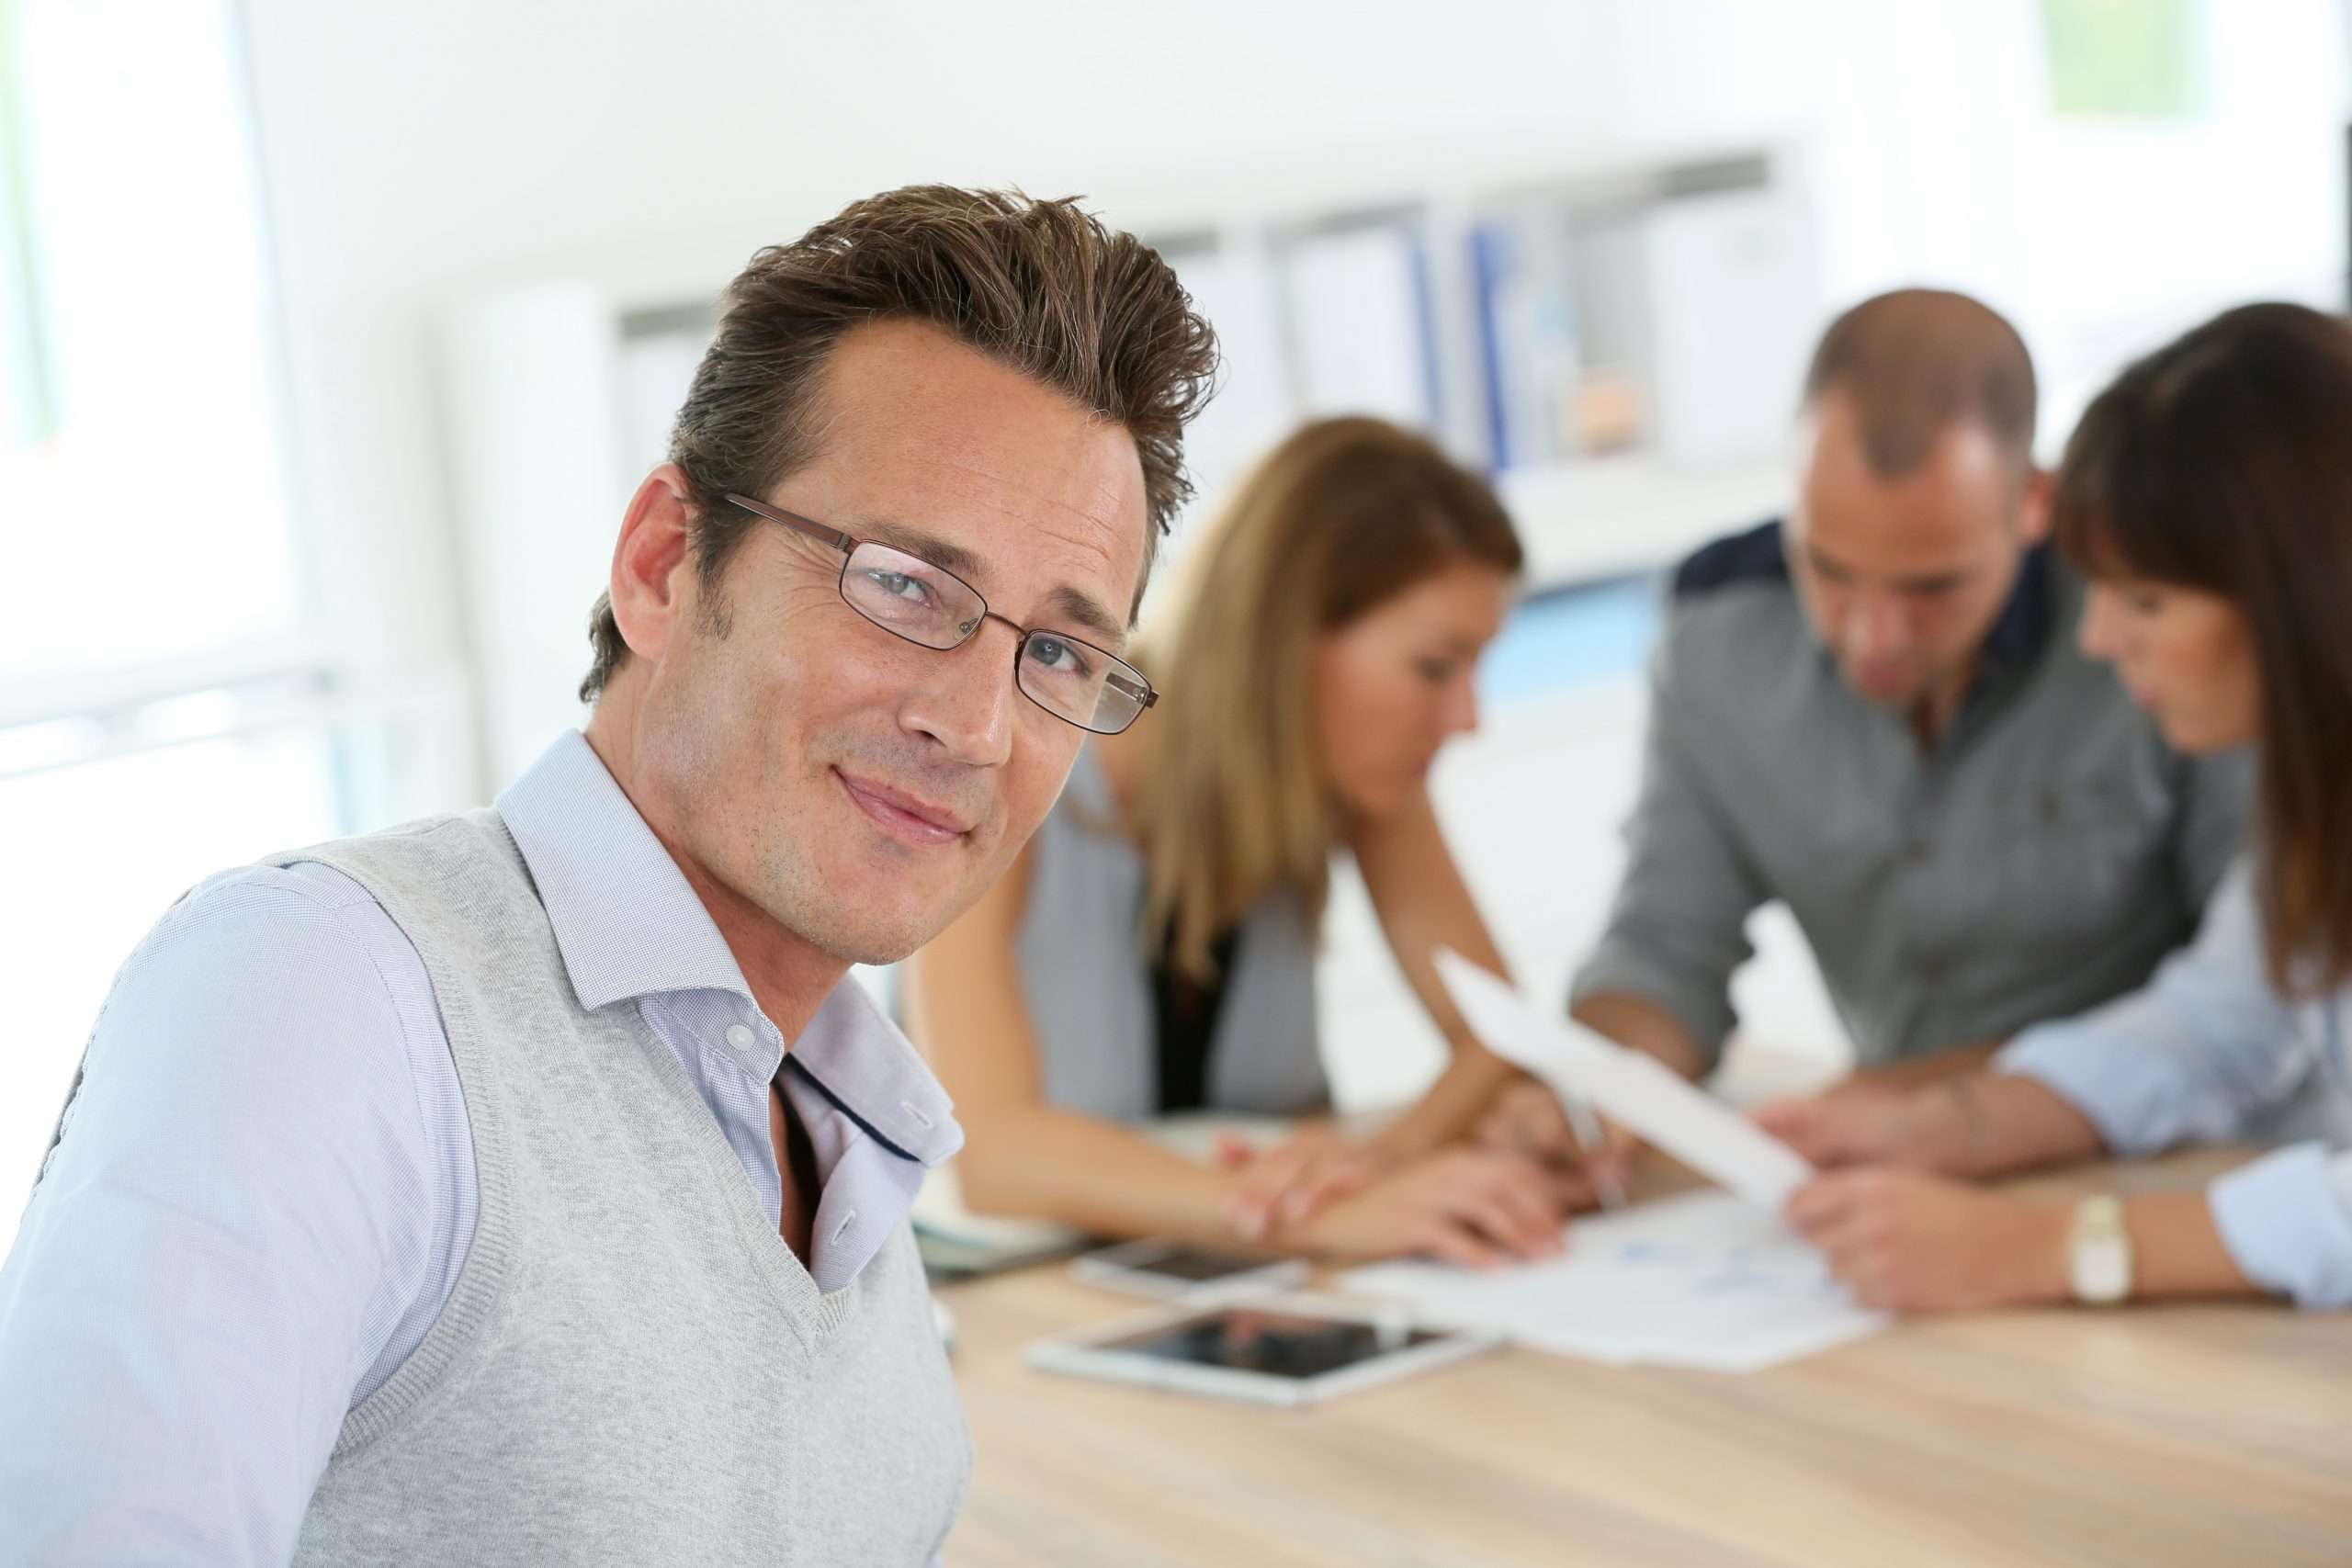 A person works with others to fulfill a post-sale training commitment